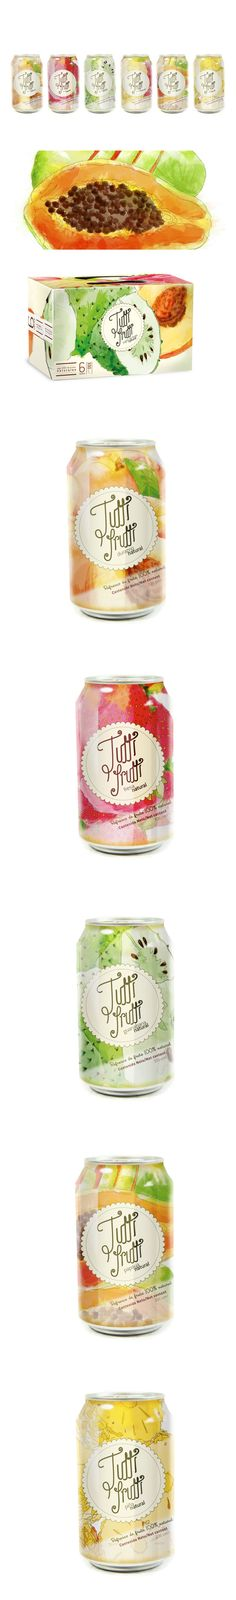 Jugos Tutti Frutti has beautiful fruit graphics on the packaging PD